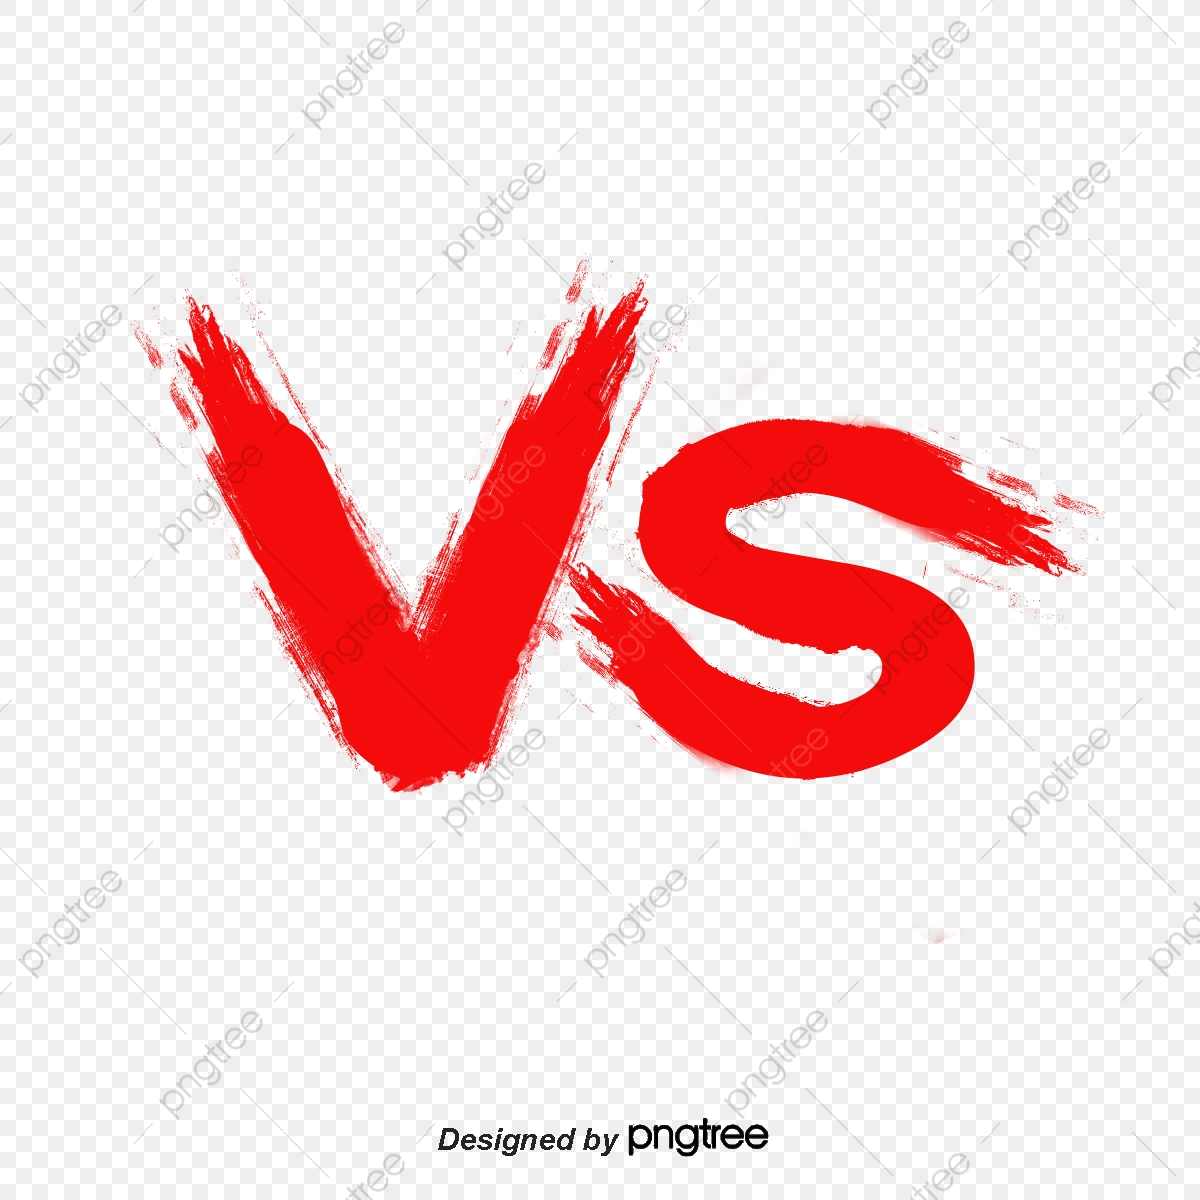 Vs Match, Vs, Game, Pk PNG Transparent Clipart Image and PSD File.